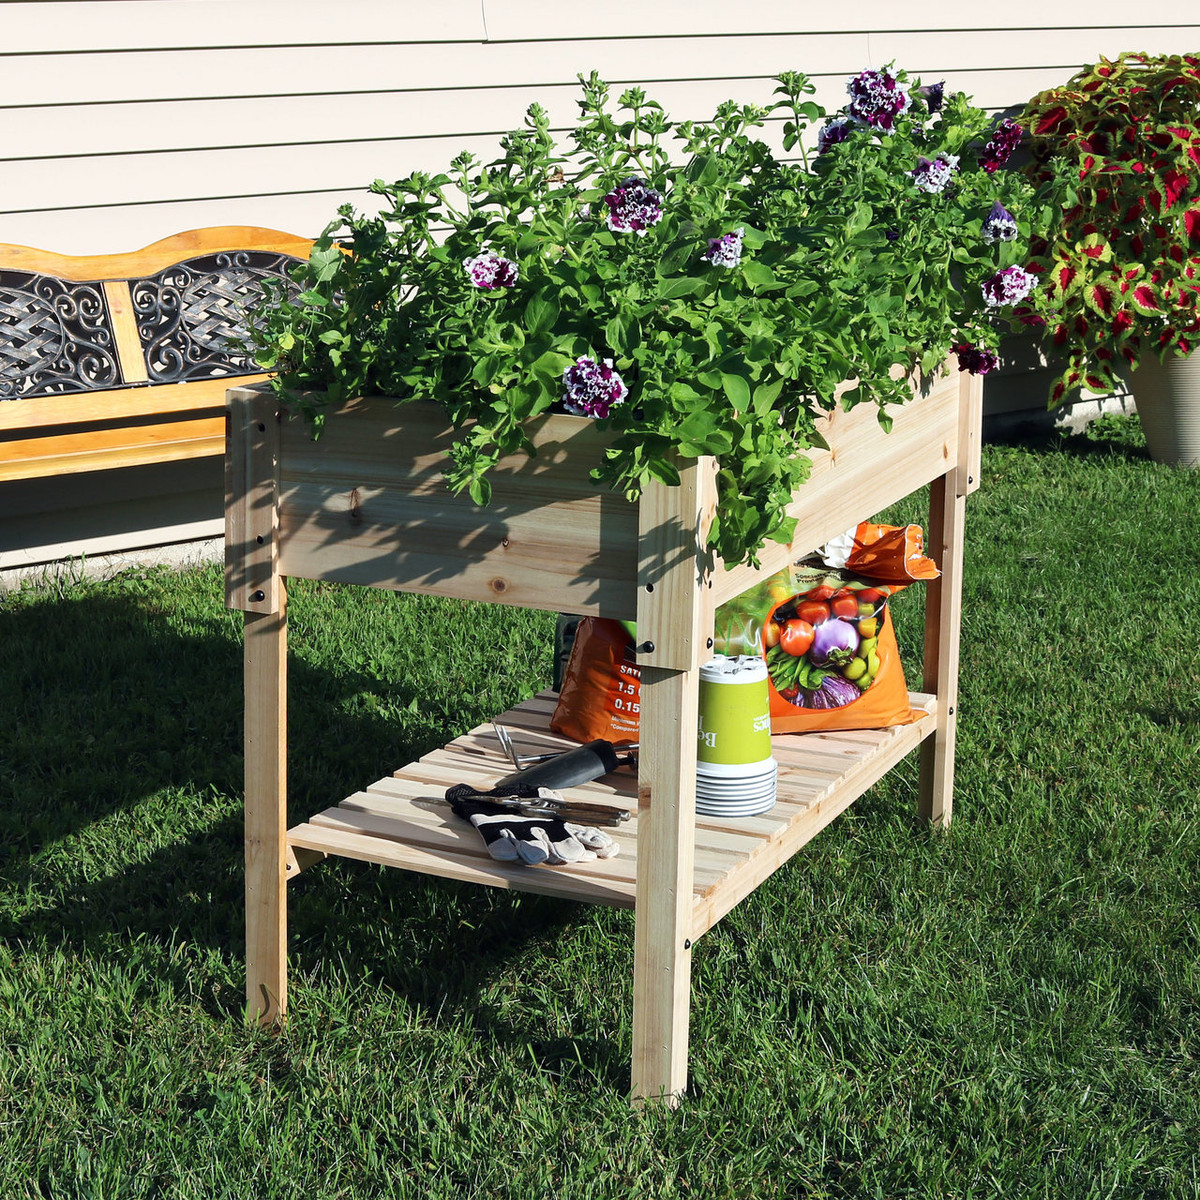 Sunnydaze Raised Wood Garden Bed Planter Box With Shelf 30 Inch Tall